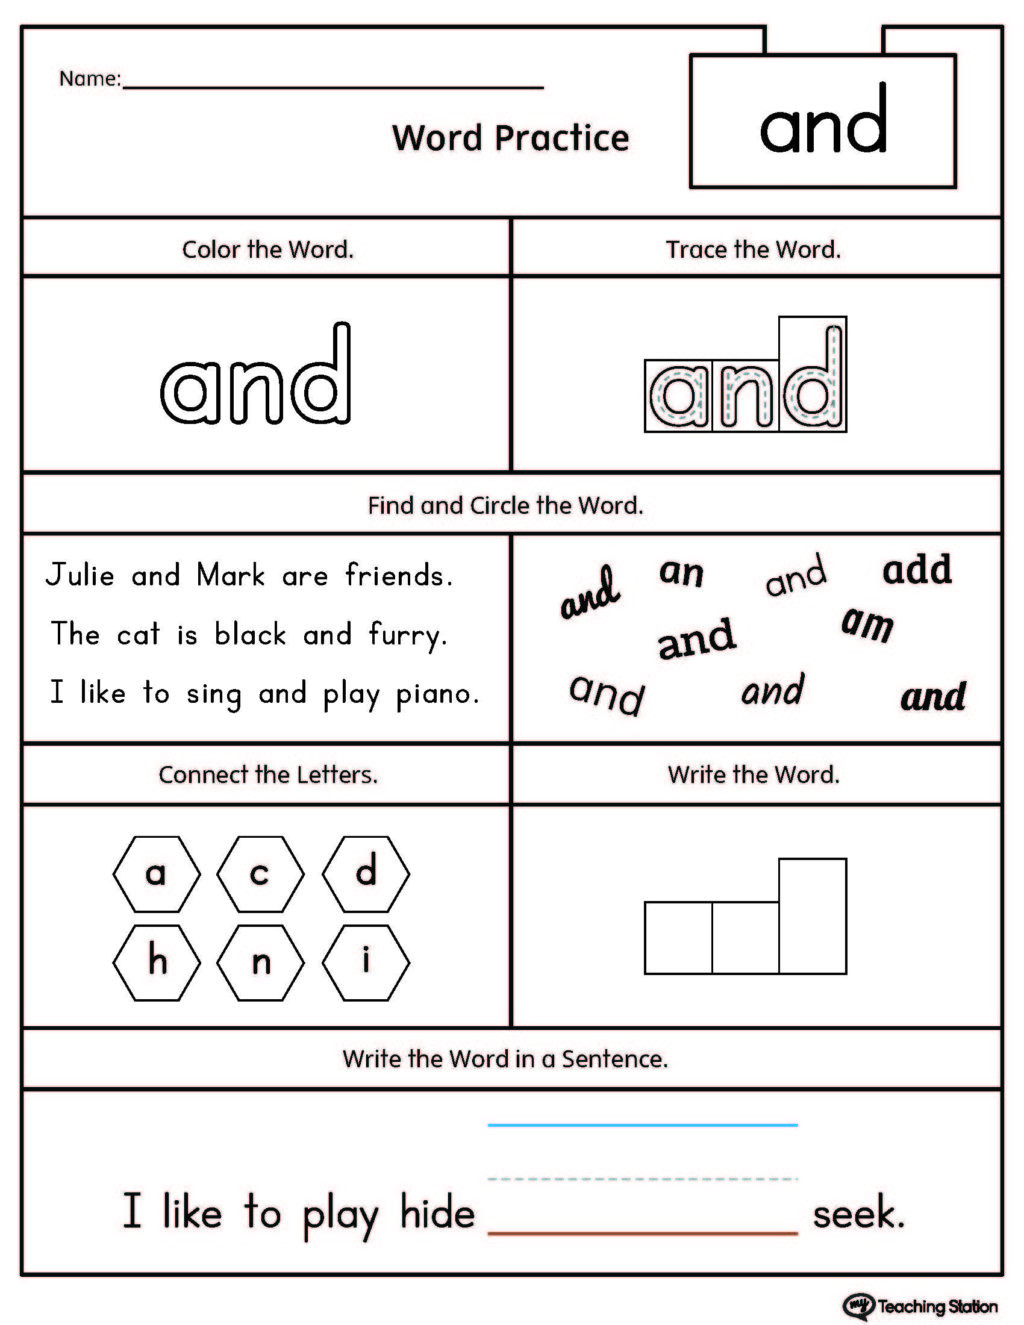 Frequency Table Worksheets 3rd Grade Worksheet Amazing Kinderintable Worksheets